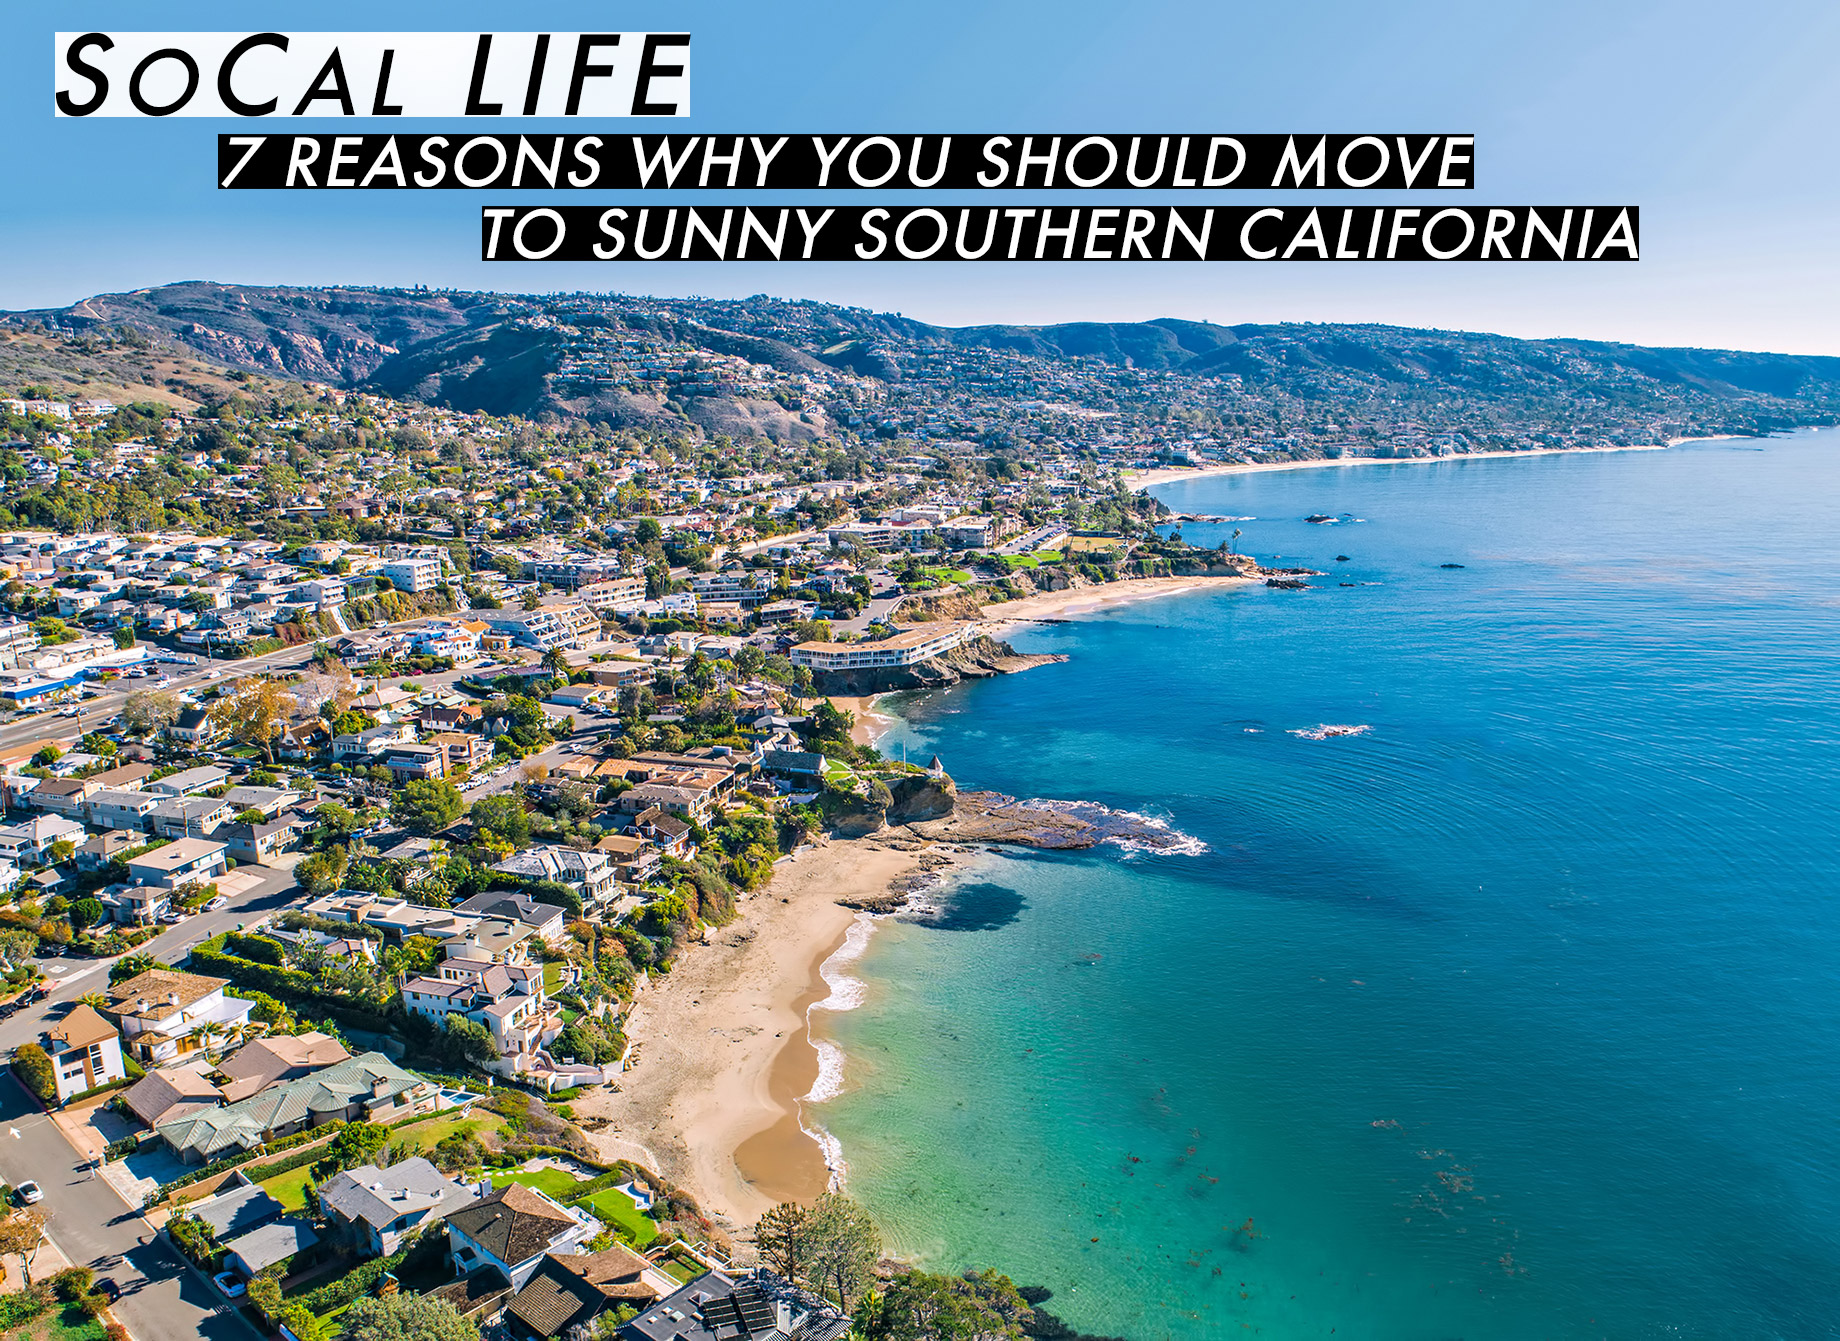 SoCal Life - 7 Reasons Why You Should Move to Sunny Southern California